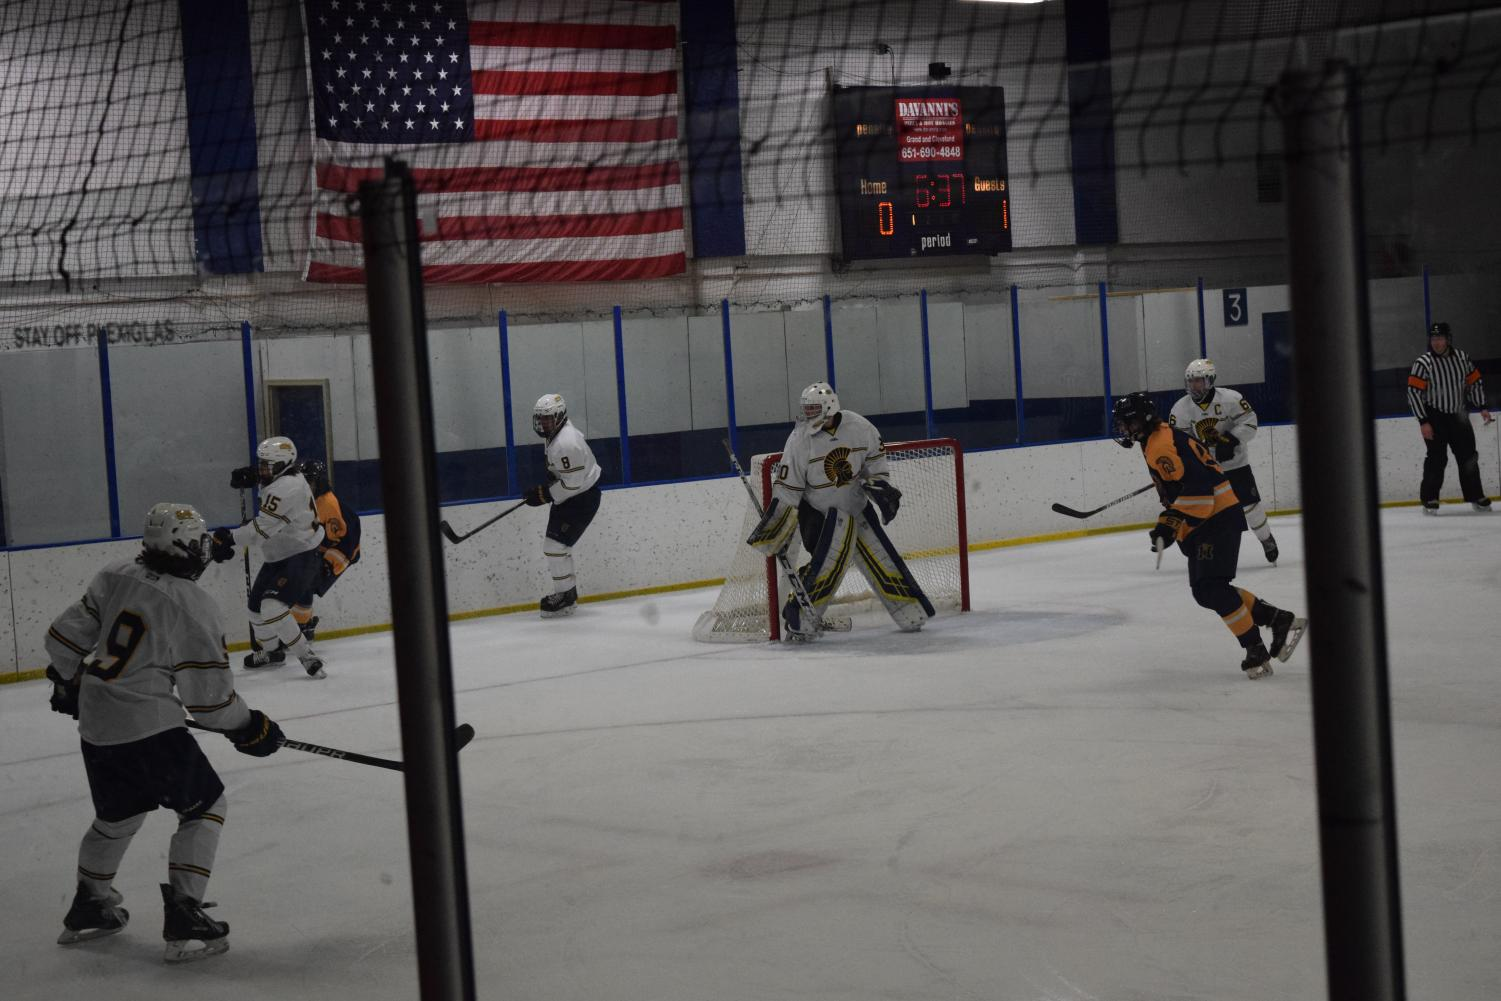 Senior Goalie Tom Kuriscak remains alert in the net while Junior Will Schavee battles at Mahtomedi player.